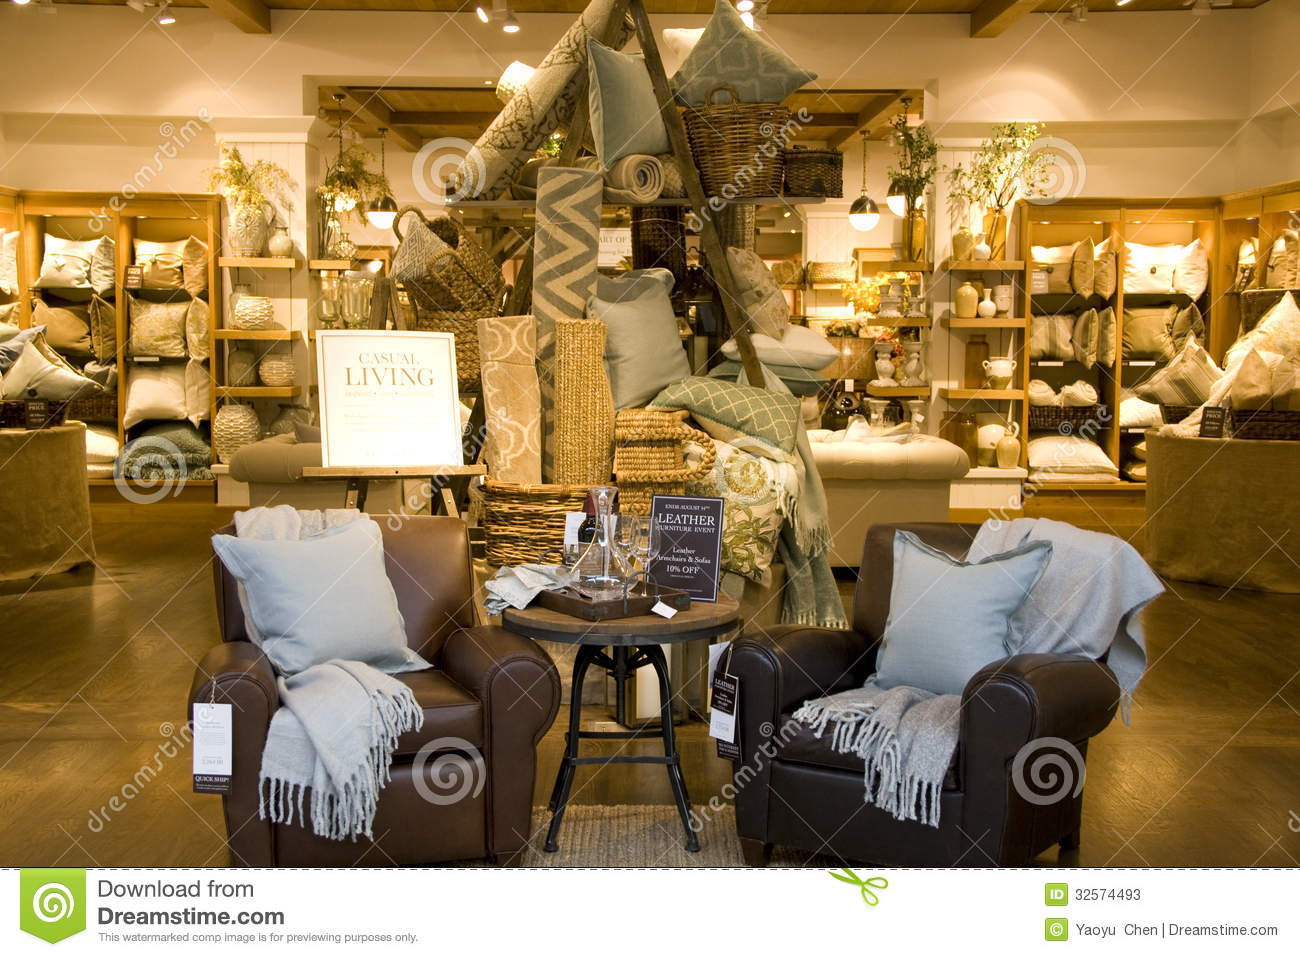 Furniture home decor store editorial stock photo image of - Home decor stores in charlotte nc image ...